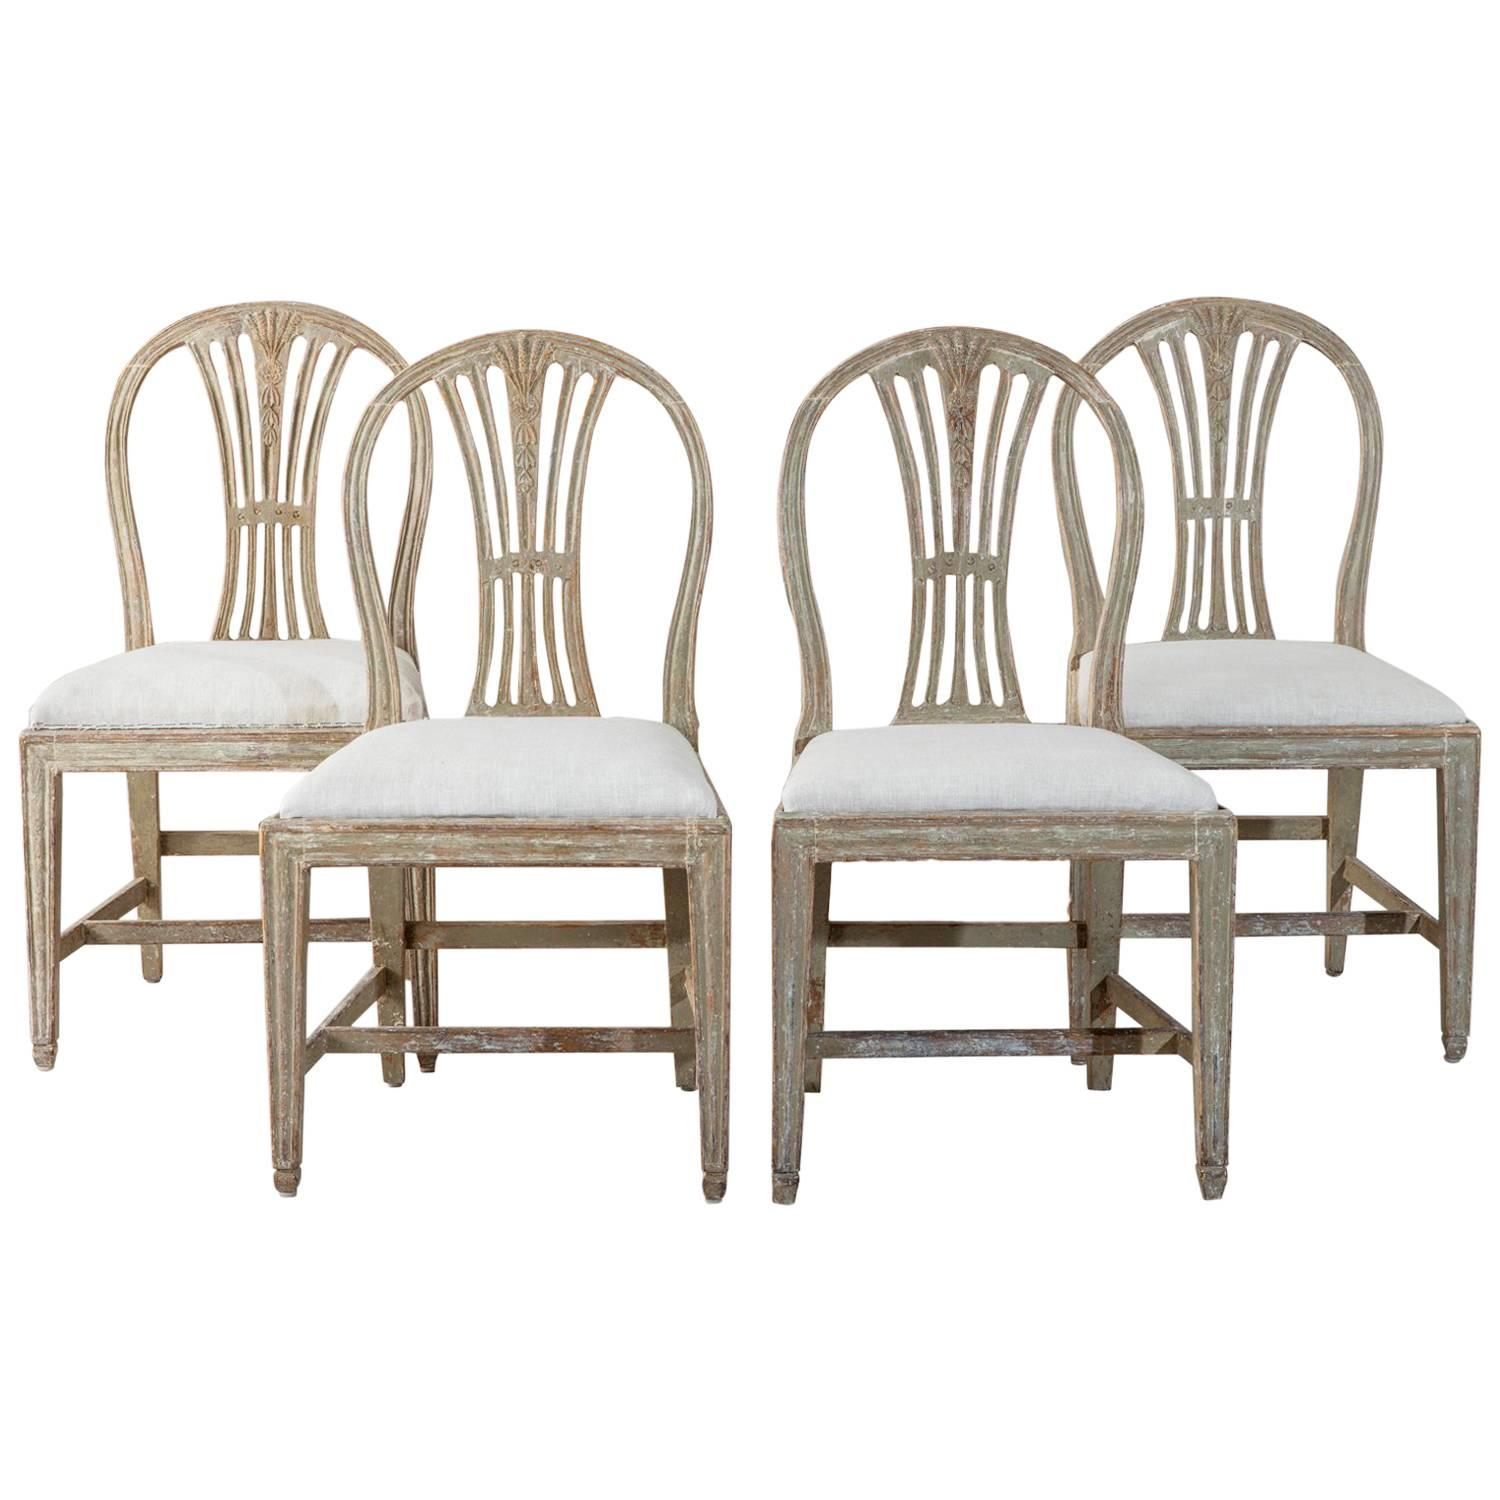 Furniture of america chaves contemporary 3 piece sofa set - 18th Century Swedish Period Gustavian Oval Back Side Chairs In Original Paint